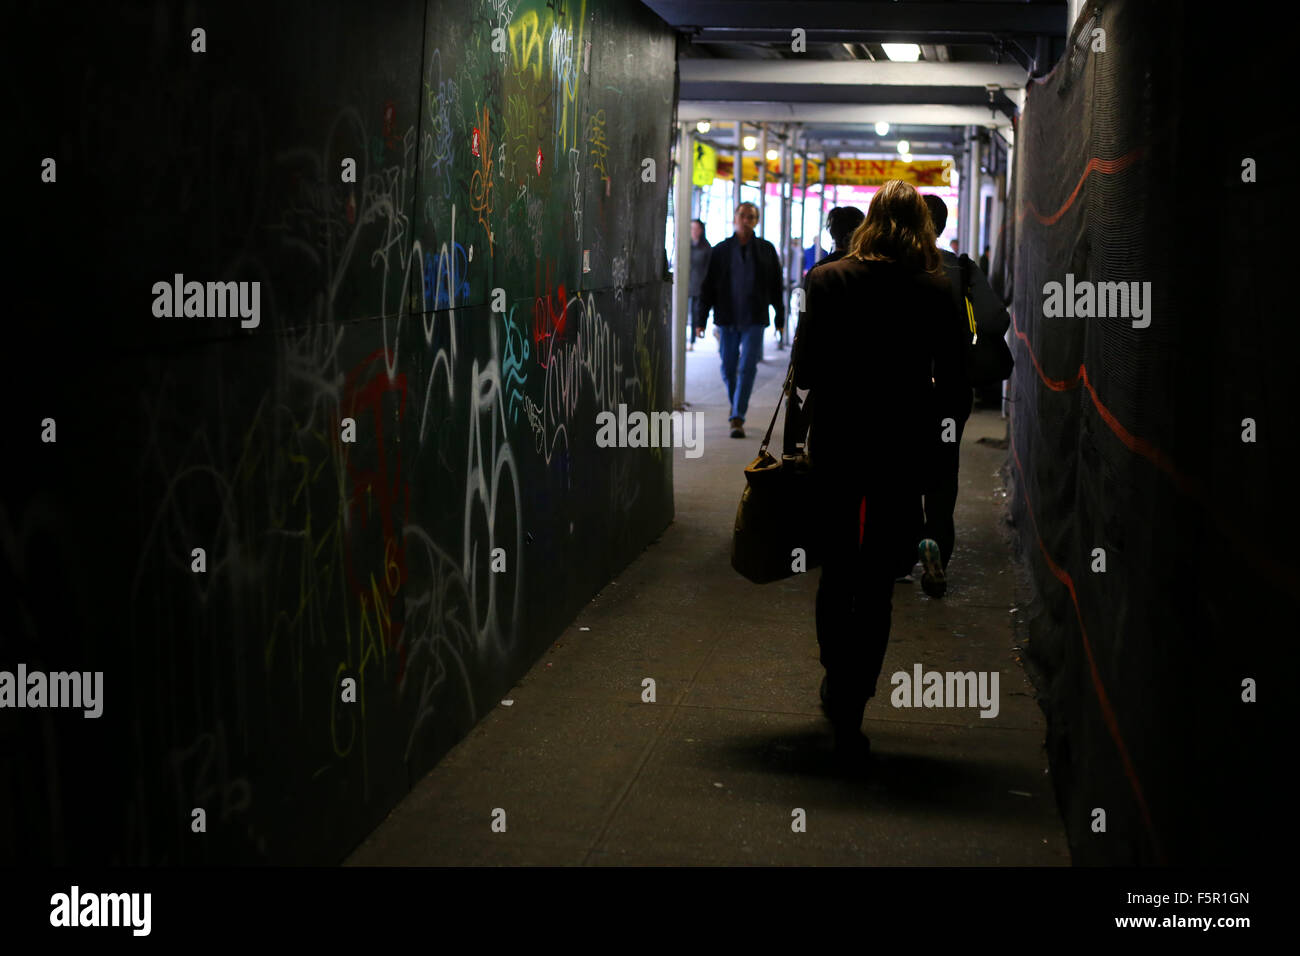 People, commuters walk through a dimly lit, narrow passageway at a New York City construction site - Stock Image